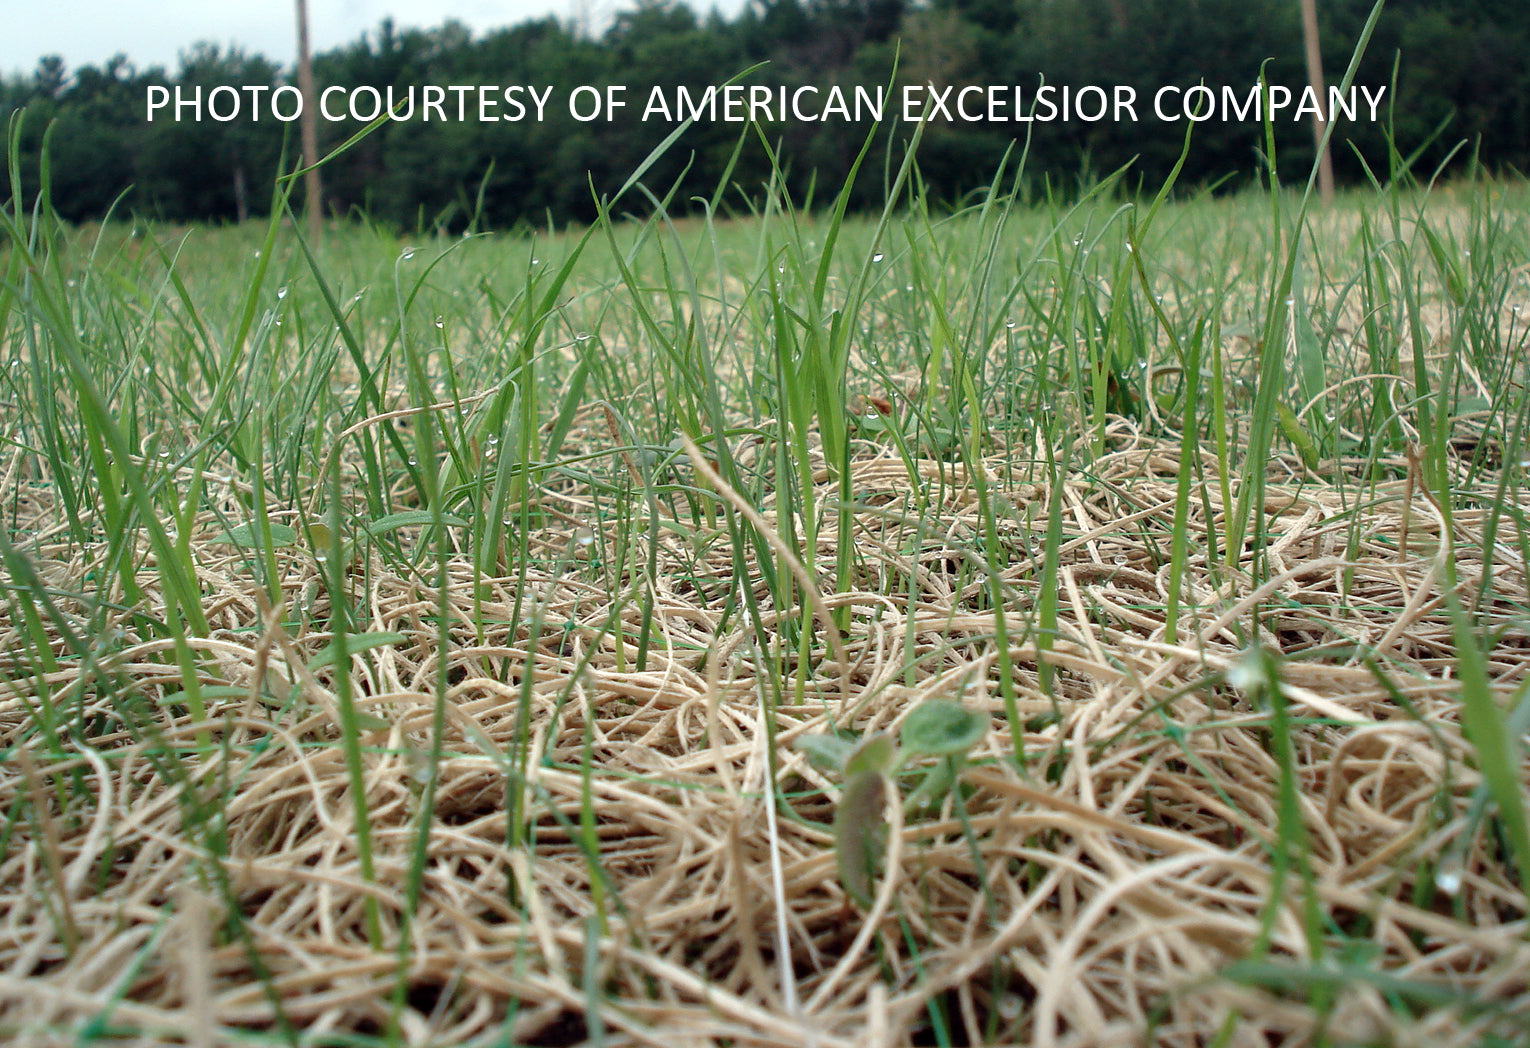 Curlex with Grass Growing Through It